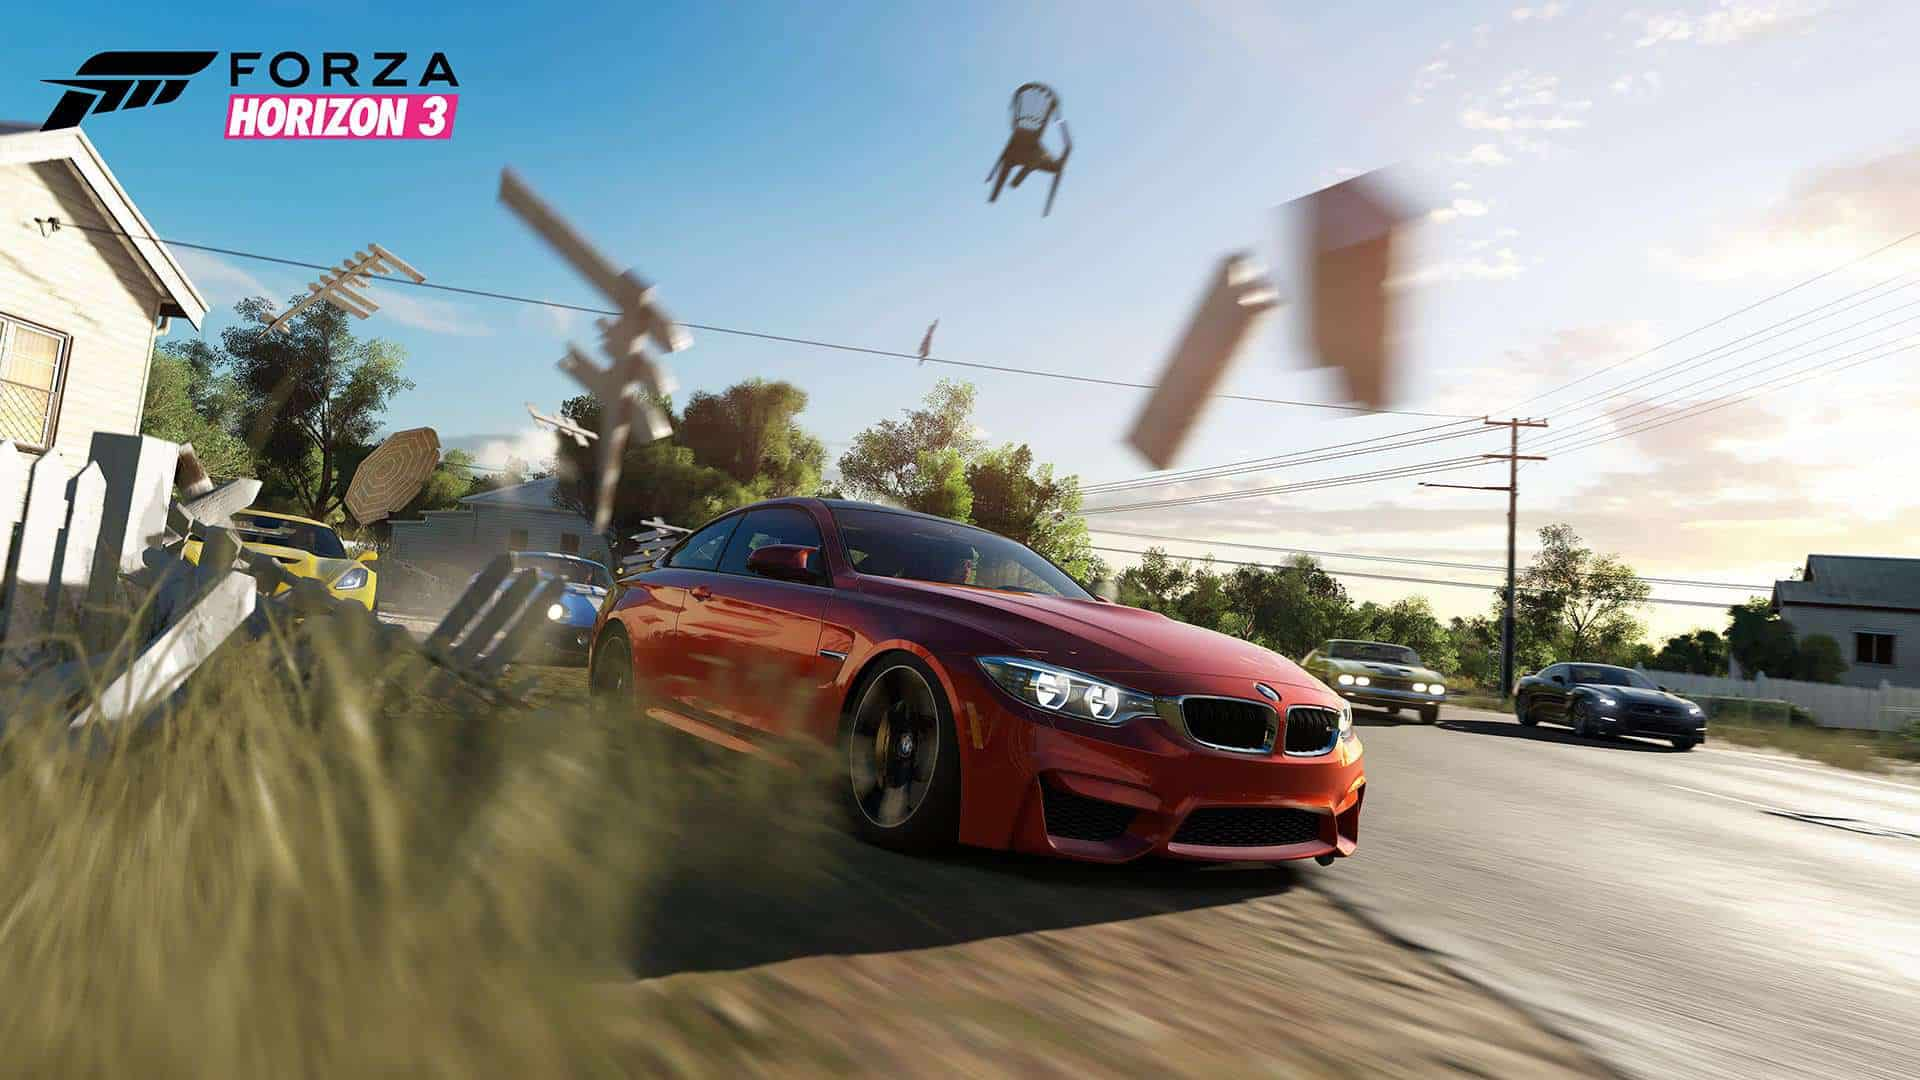 forza horizon 3 free pc game download and cracked torrent